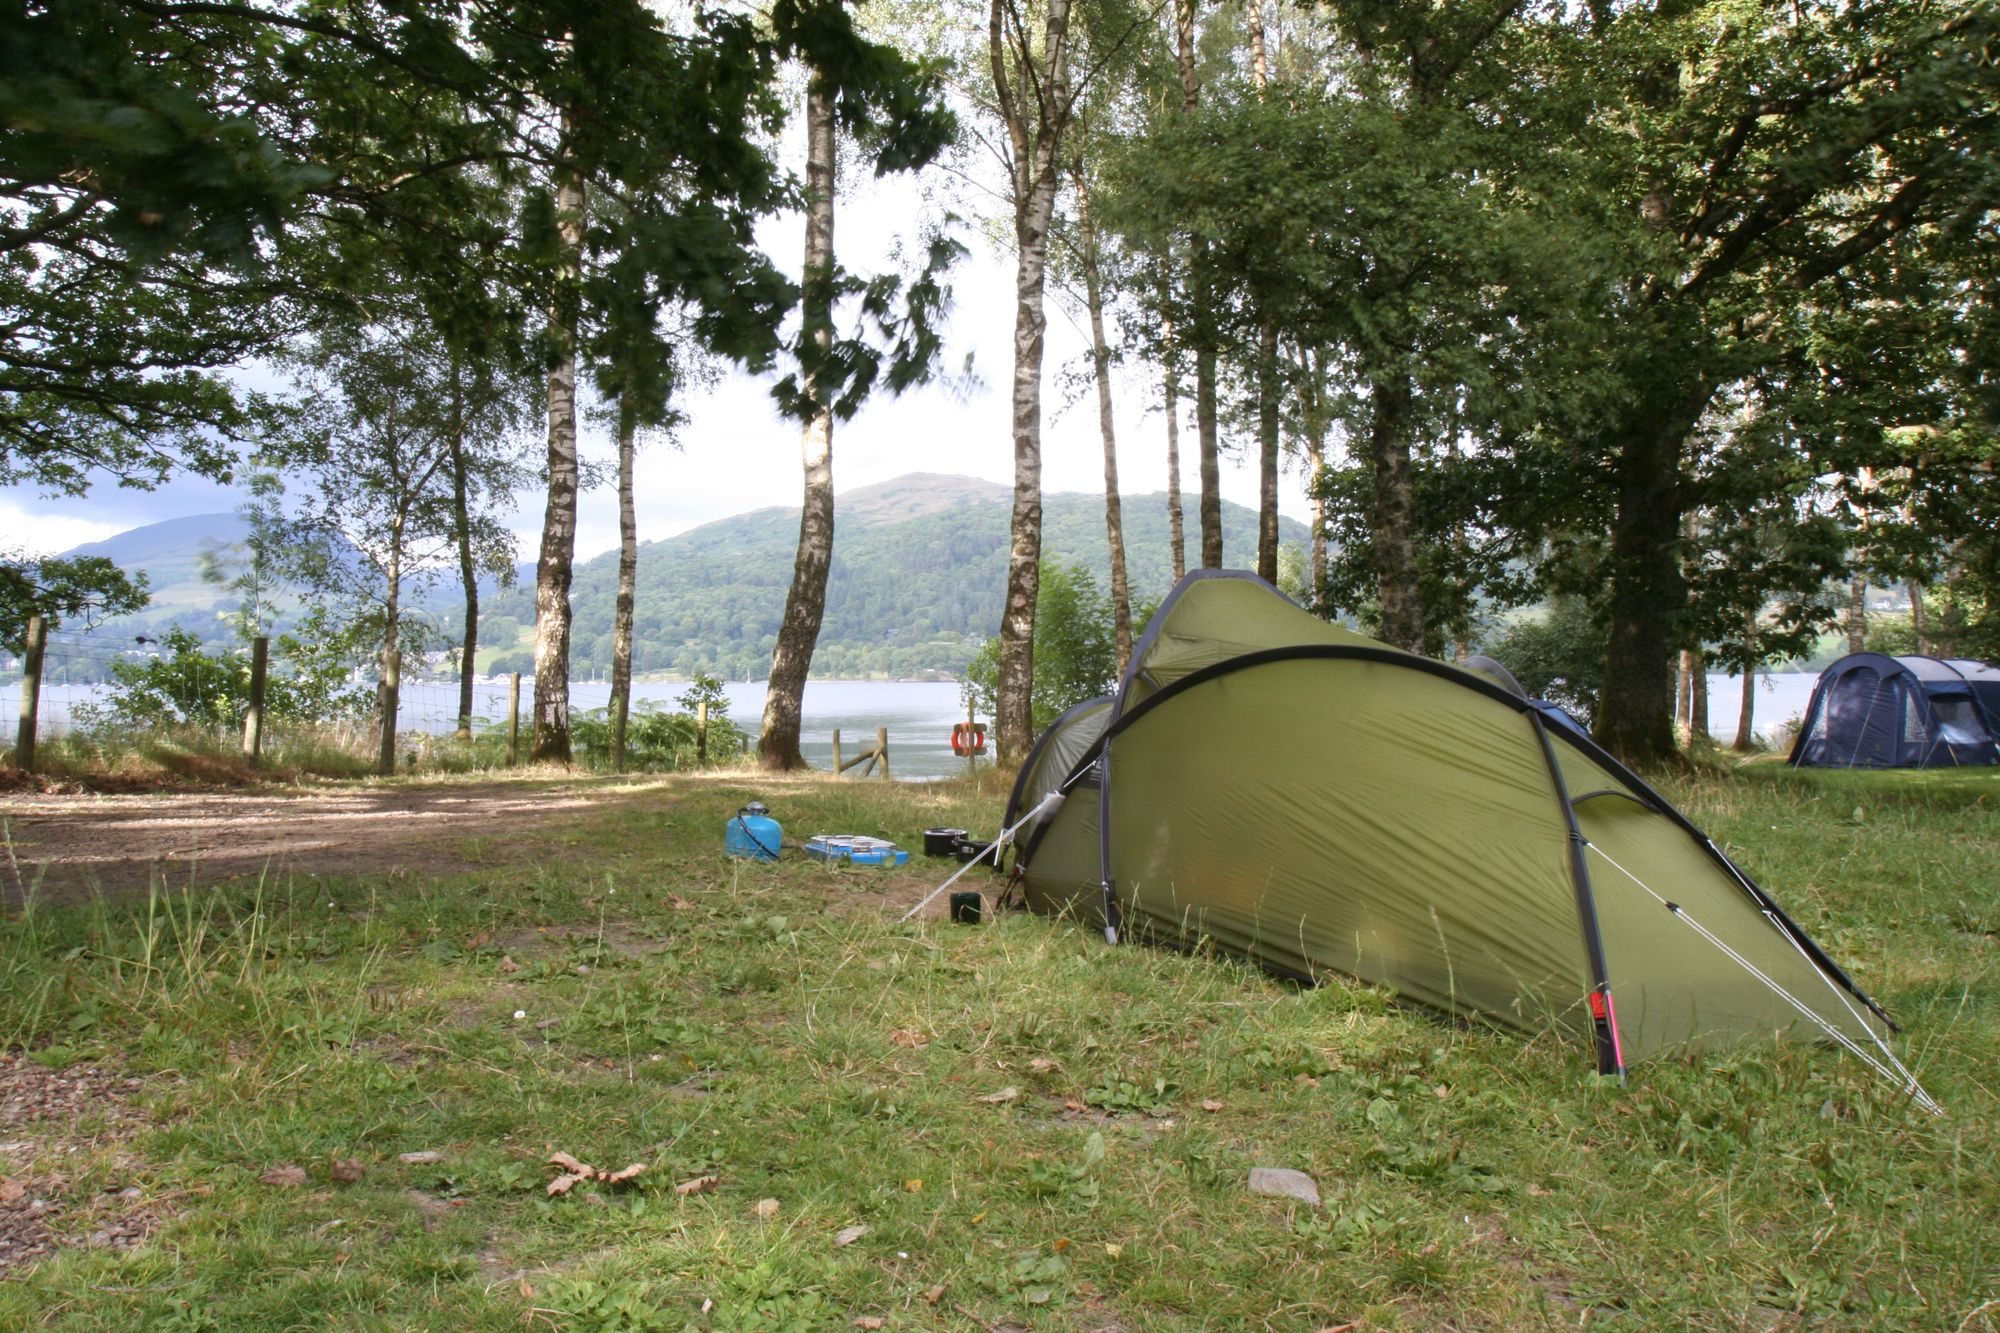 Campsites in The National Trust – I Love This Campsite